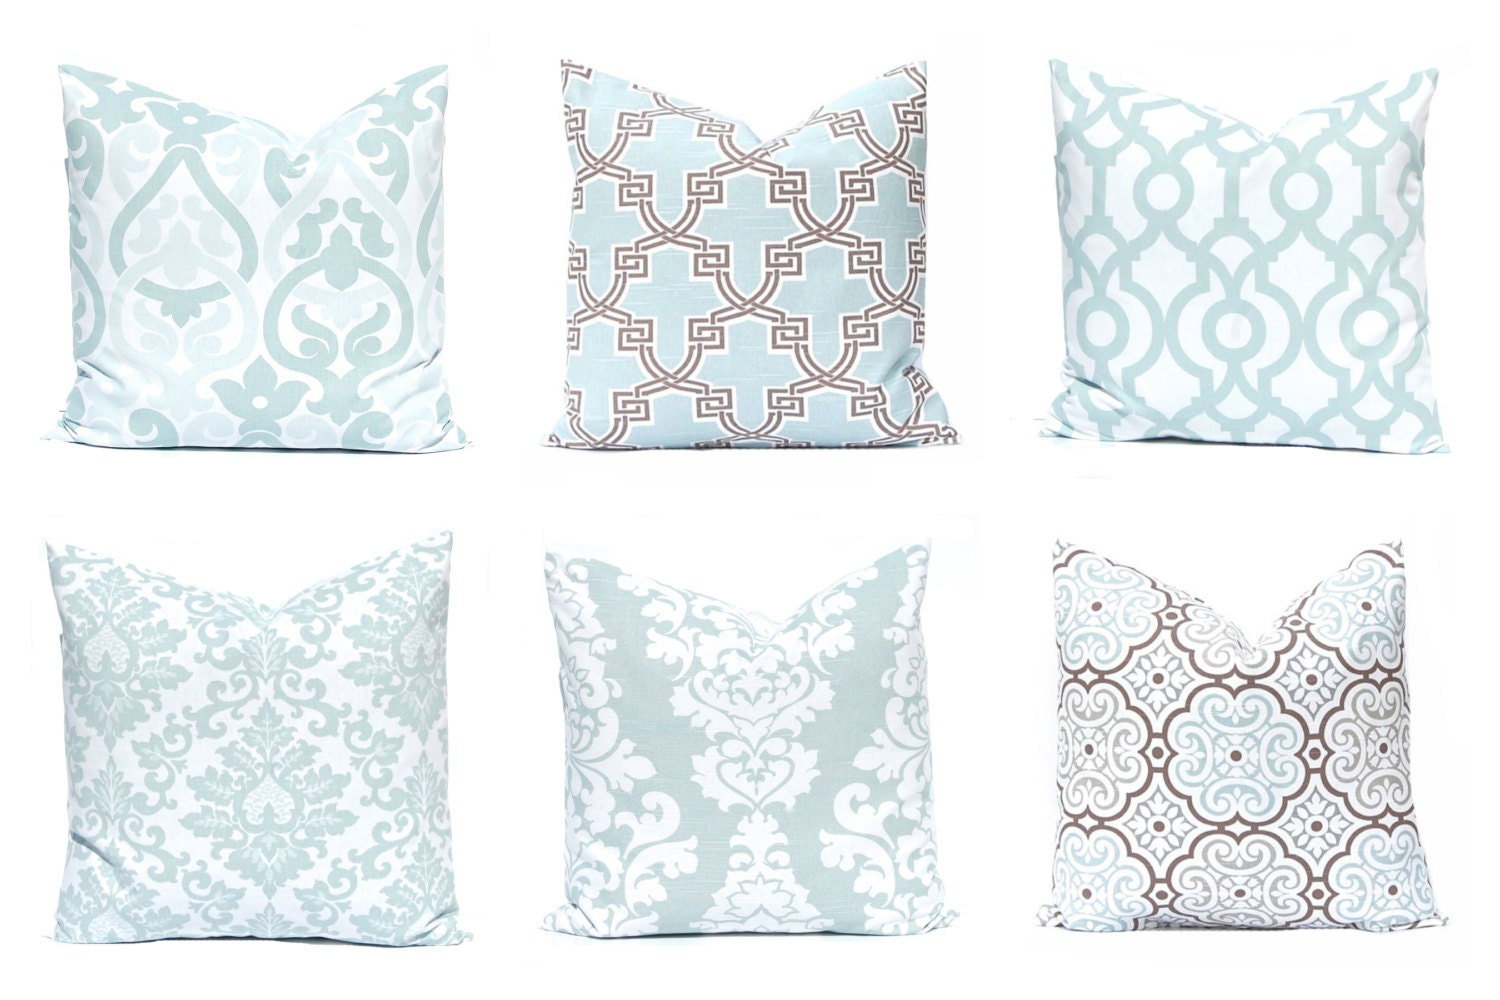 Decorative Pillows For Couch Etsy : Decorative Pillow Covers Aqua Throw Pillow Covers Sofa